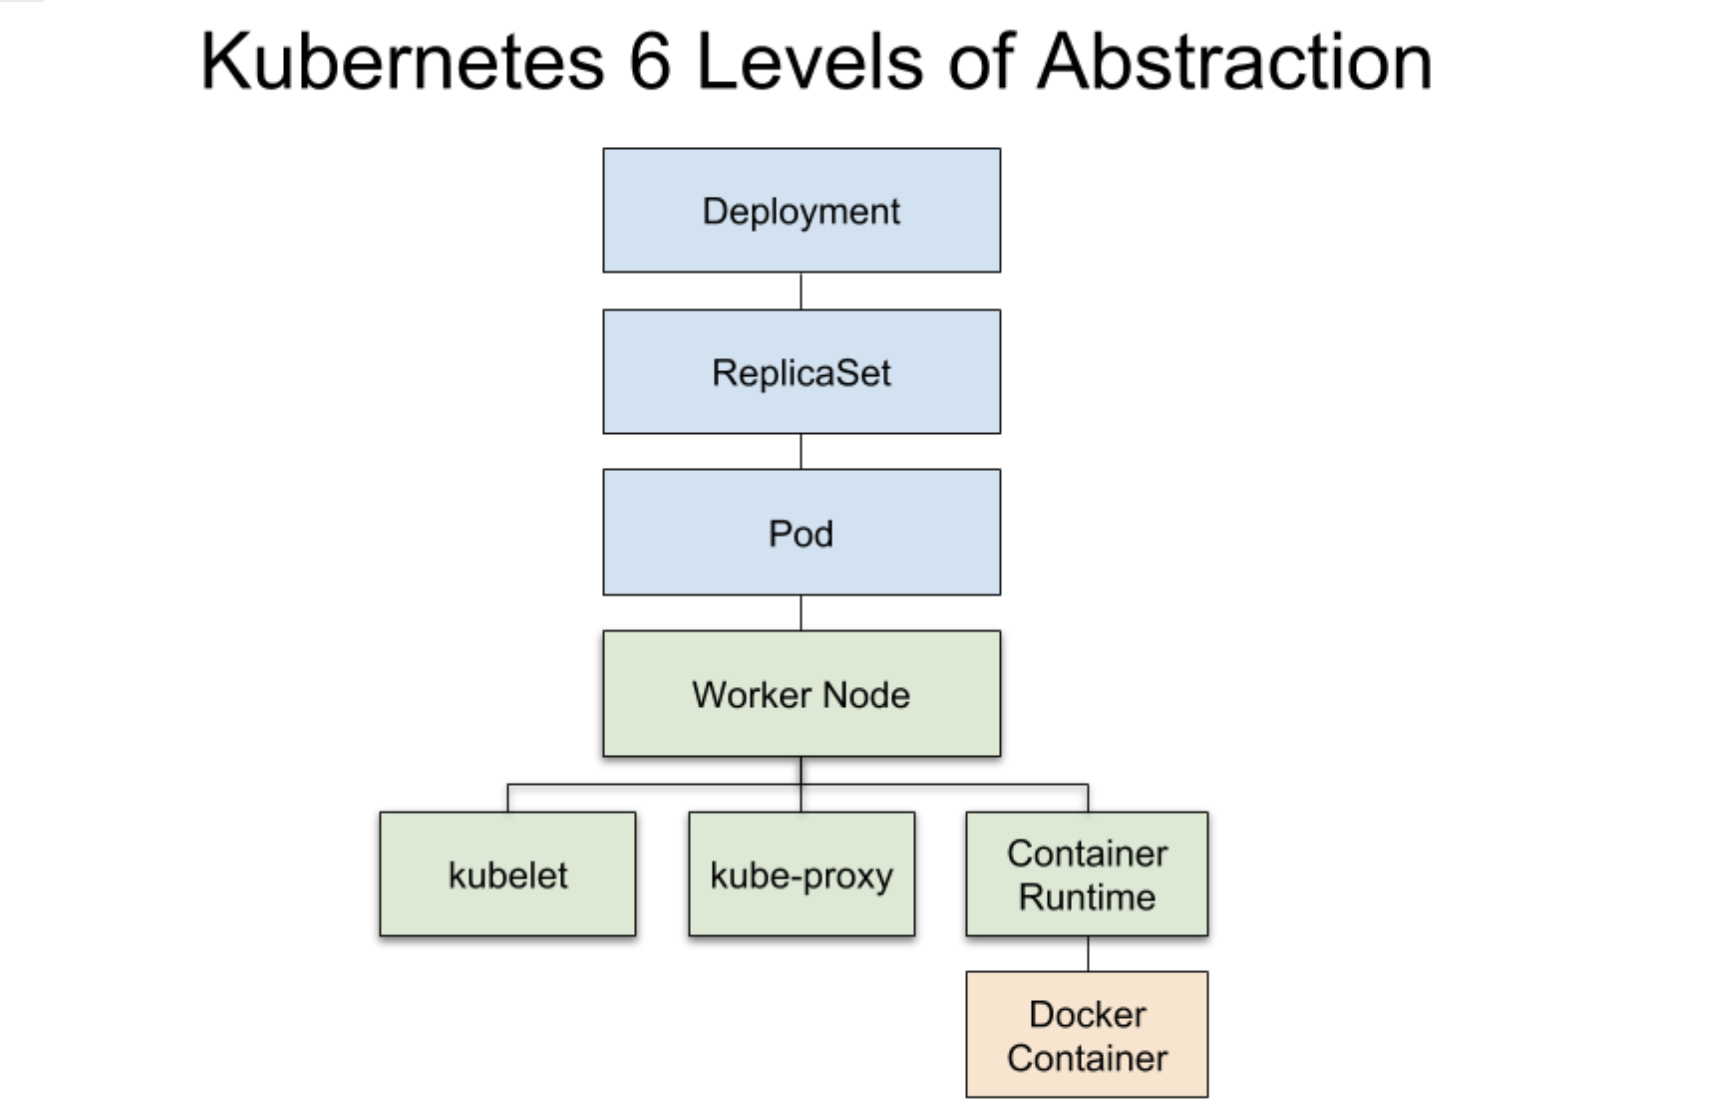 Detailed Kubernetes abstraction Deployment levels